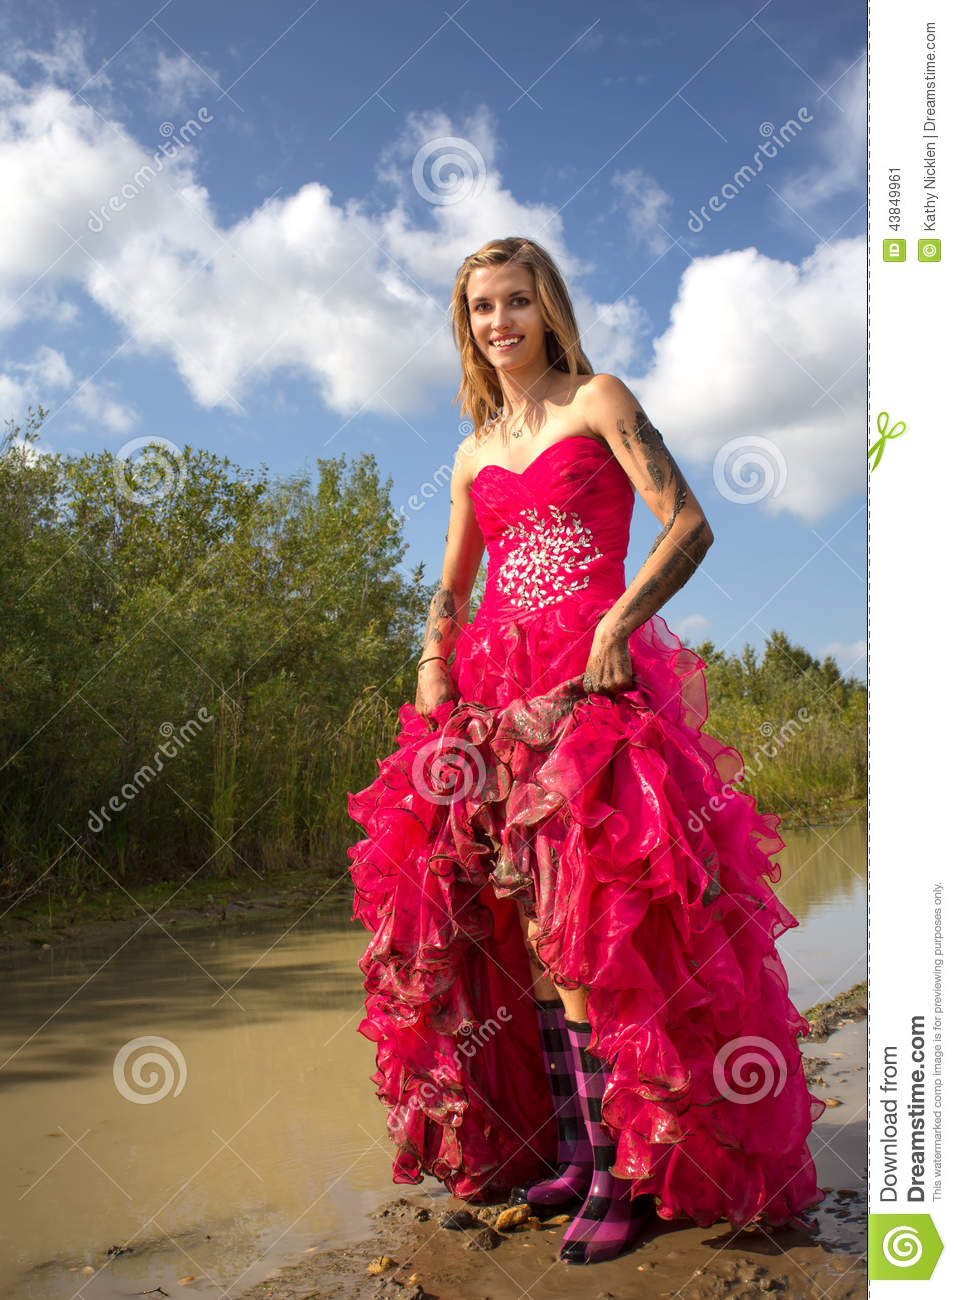 Teen holding up prom dress stock image. Image of long - 43849961